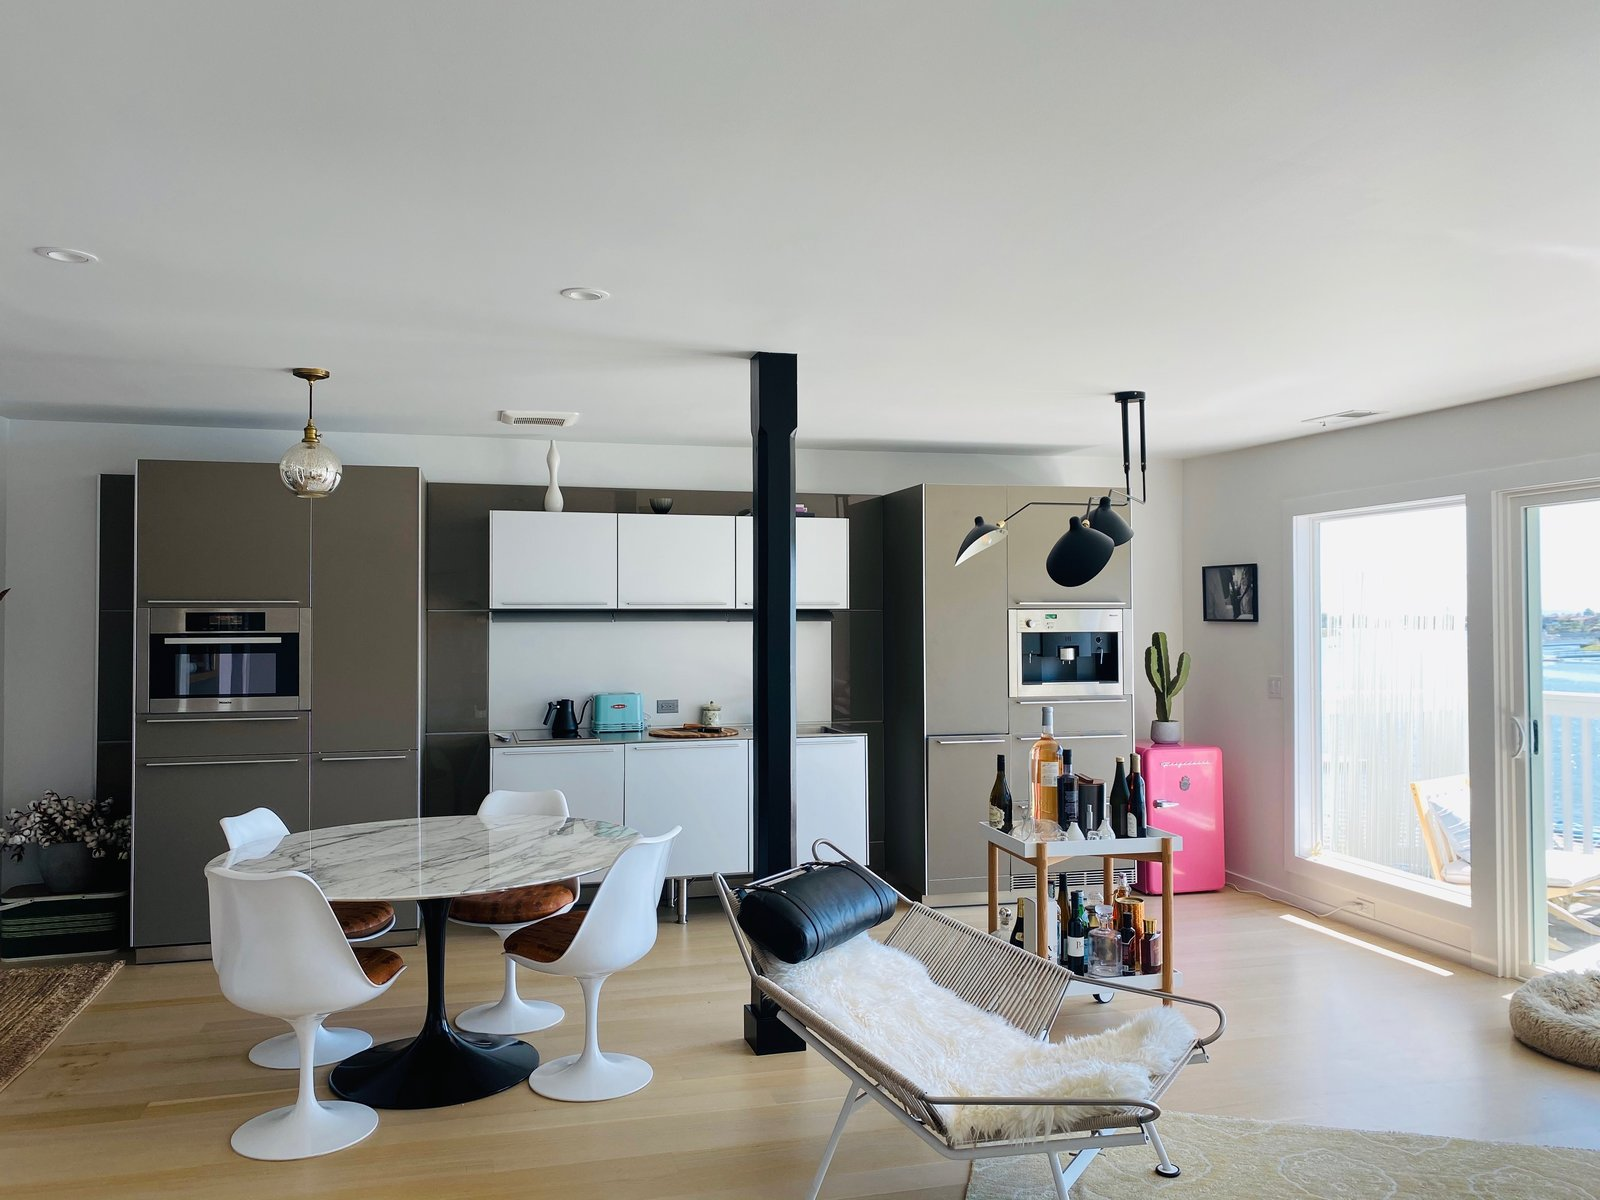 Dominique Crenn's Bay Area home is oriented to leave an unobstructed view of the water. The kitchen is minimal, with a simple oven and stove top with a small refrigerator and freezer tucked into the wall.  Photo 2 of 13 in 5 Comforting Dishes That Top Chefs Are Making at Home